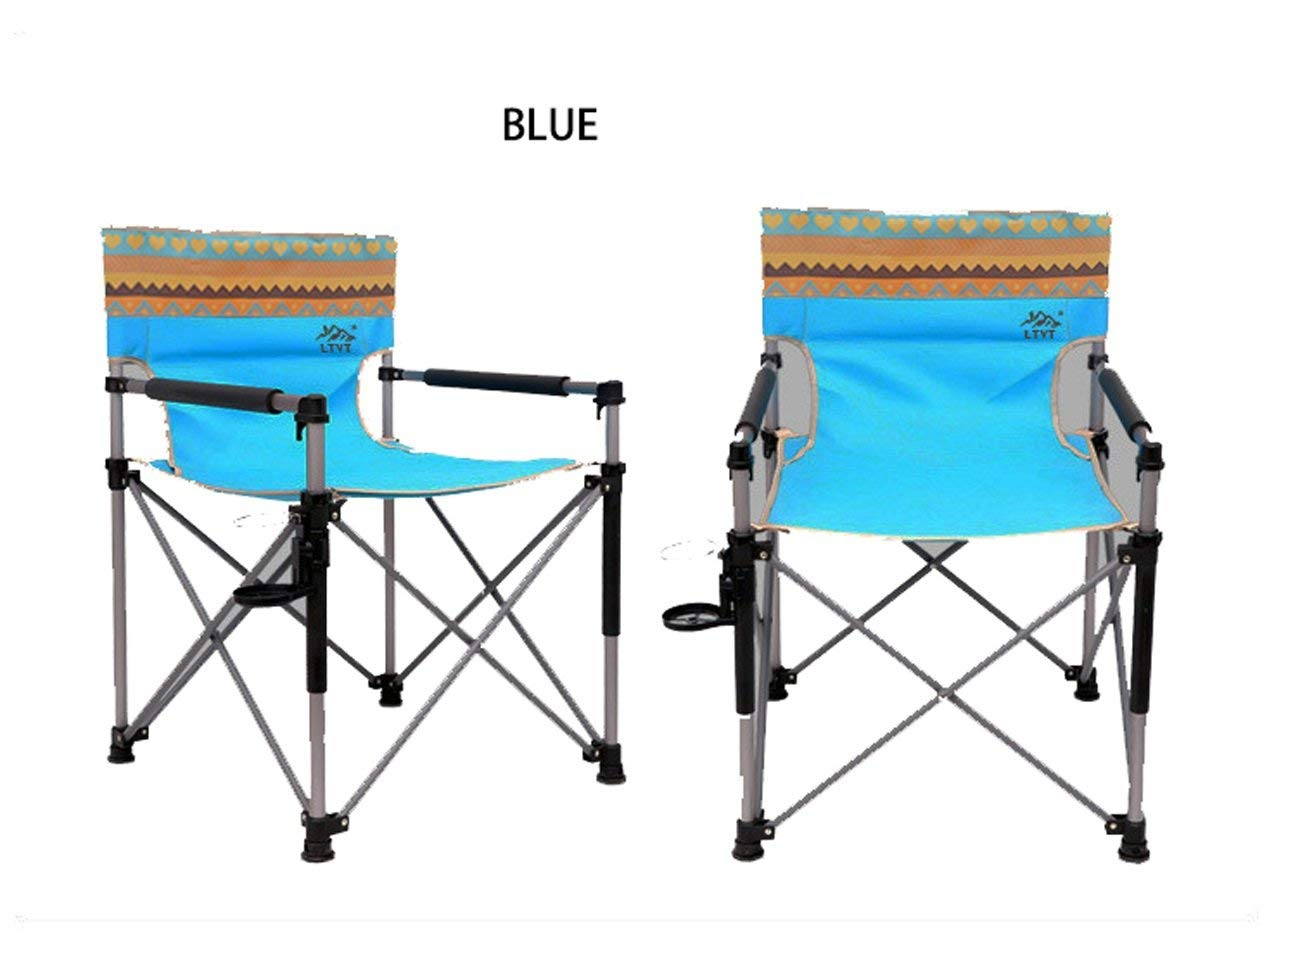 LHFJ Portable Camping Chair lightweight Folding Backpacking Chairs Heavy Duty 130kg For Outdoor Hiking Mountaineering Camping,picnic Etc